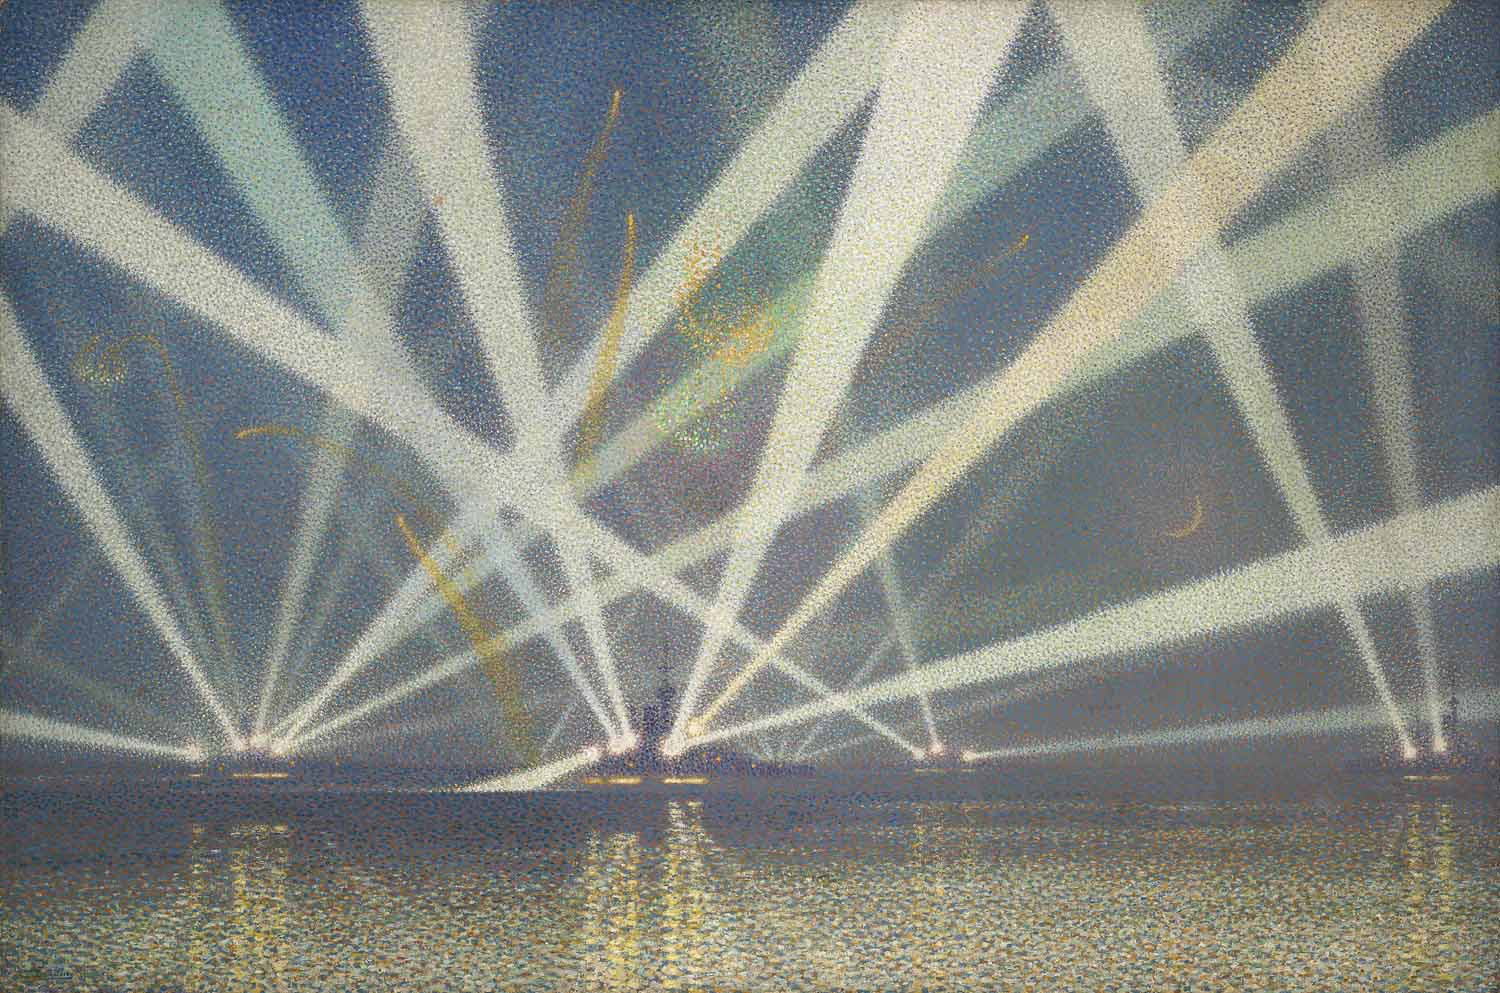 The Grand Fleet: Searchlight Display